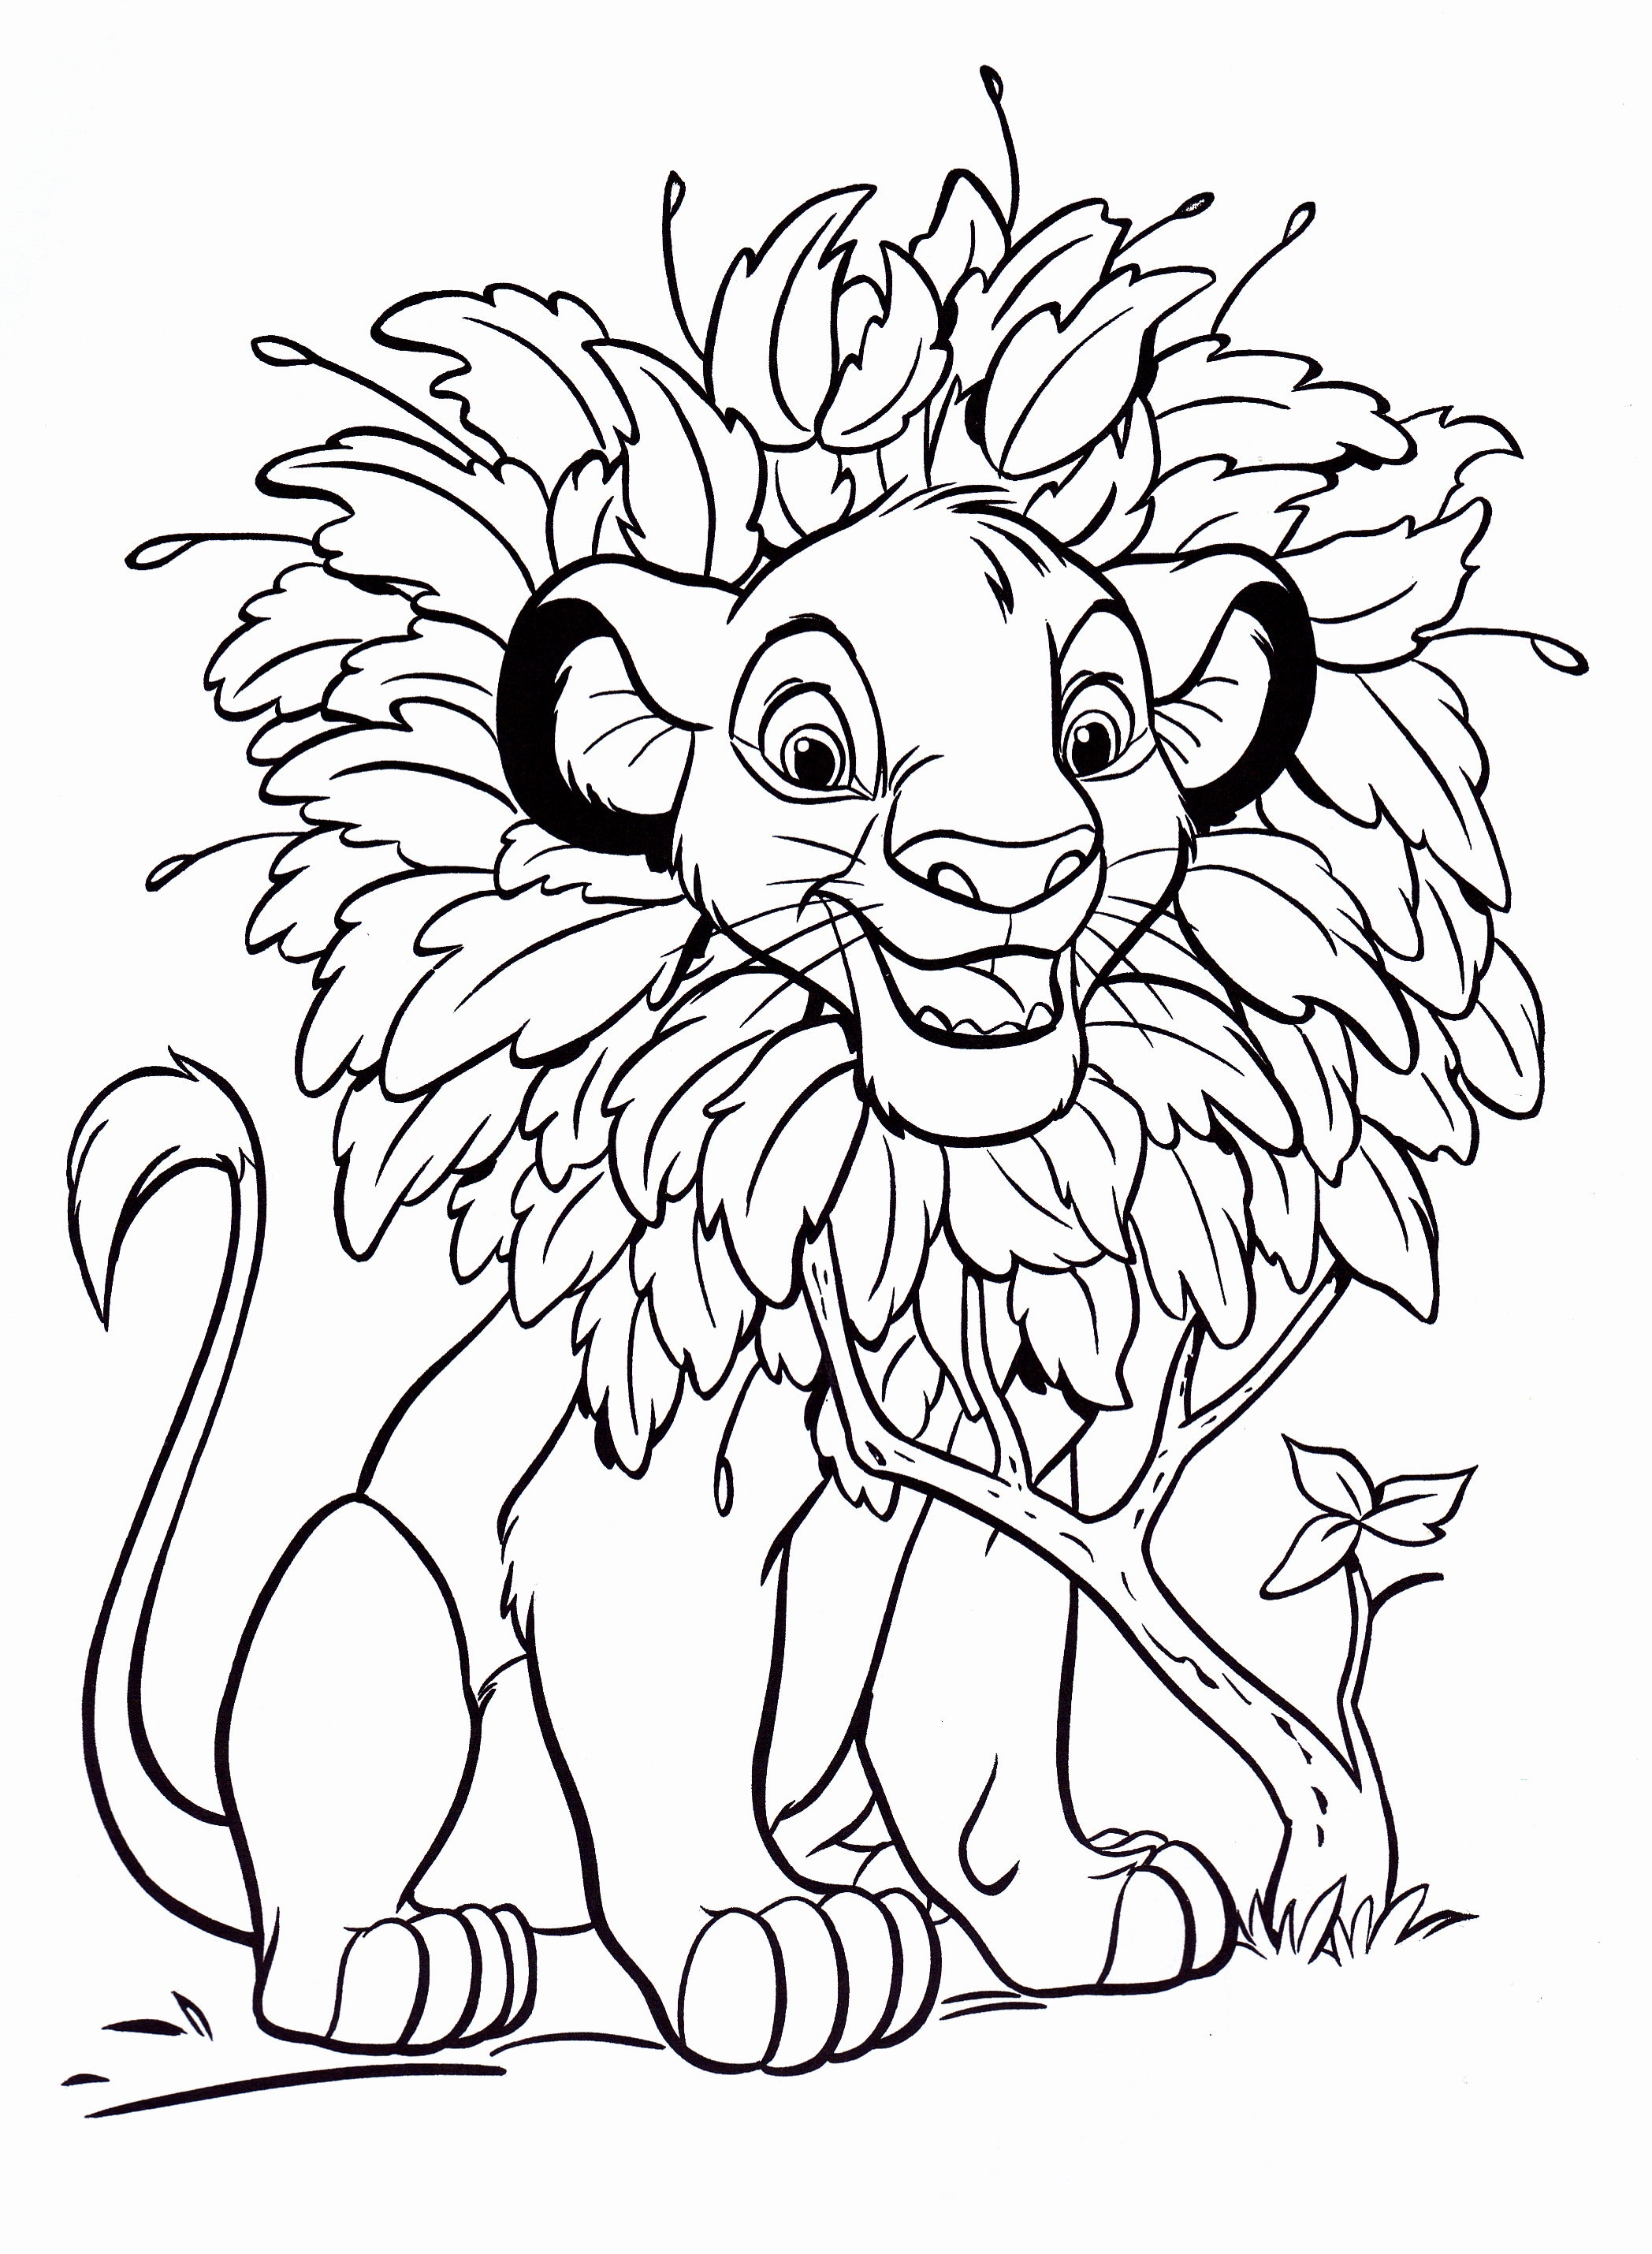 Disney Printable Coloring Pages At Getdrawings Com Free For